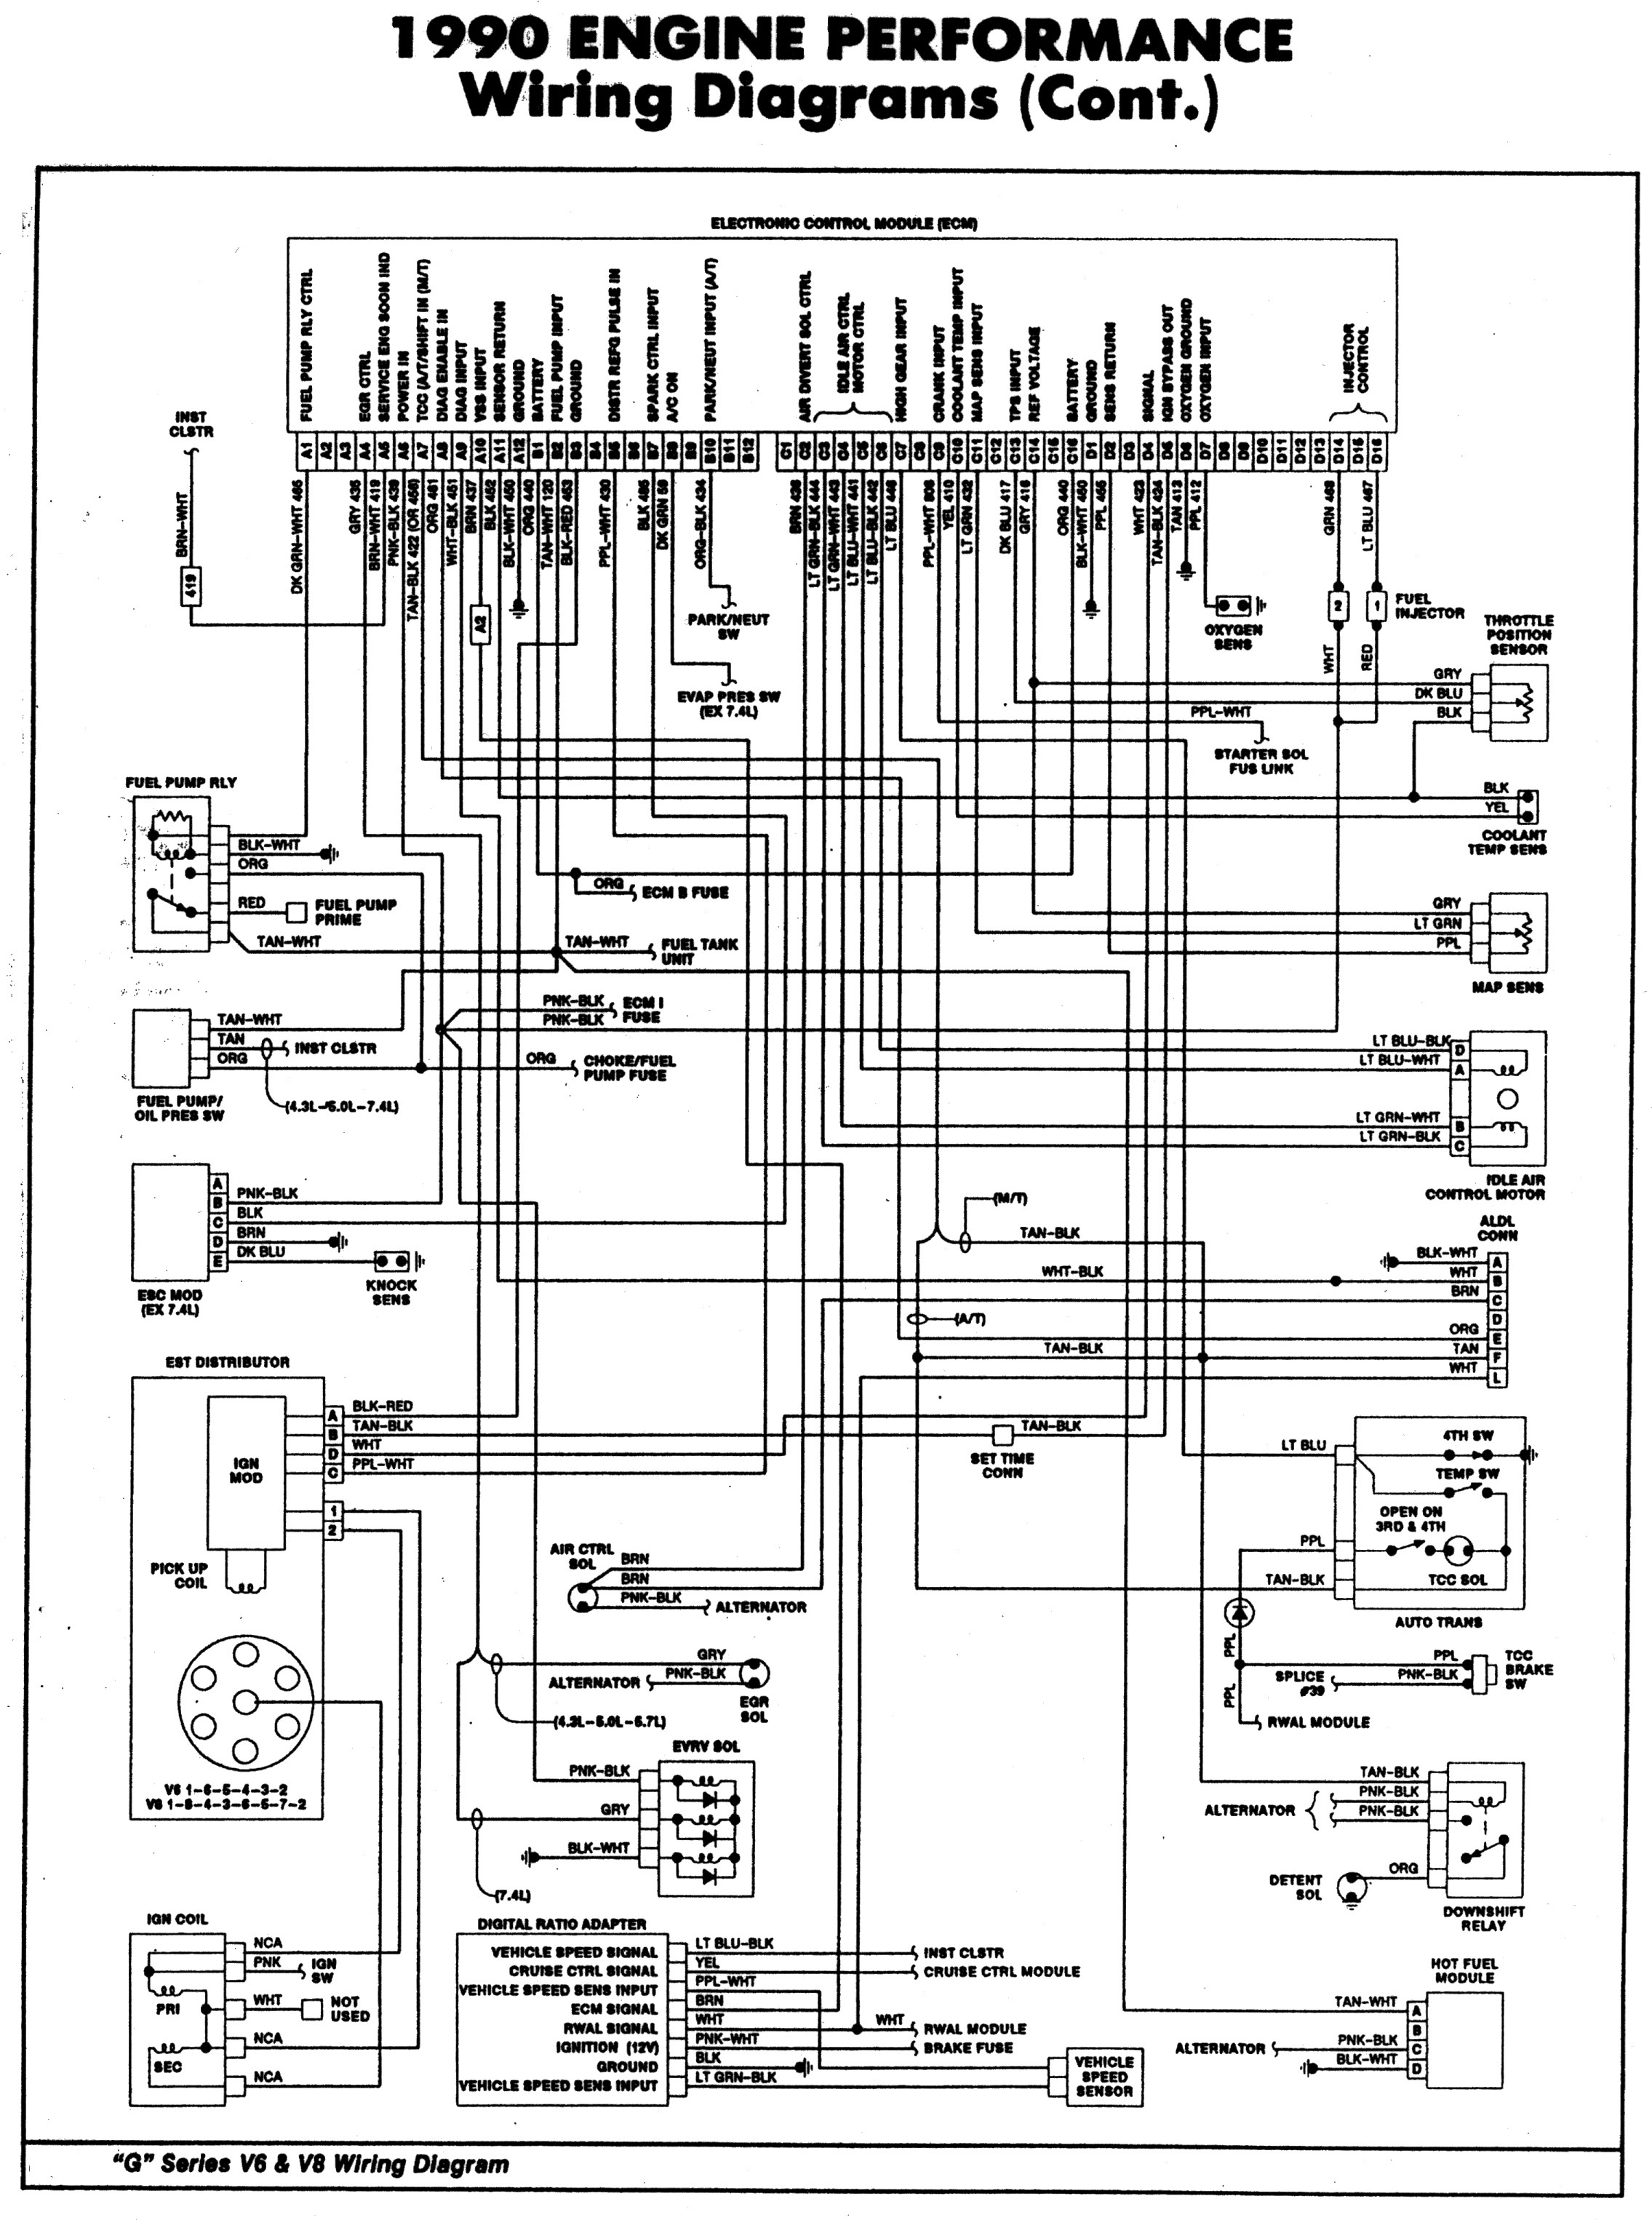 v8 chevy engine wiring diagram 1974 wiring schematic diagram1974 suburban wiring diagram wiring library marine battery switch wiring diagram 1974 suburban wiring diagram